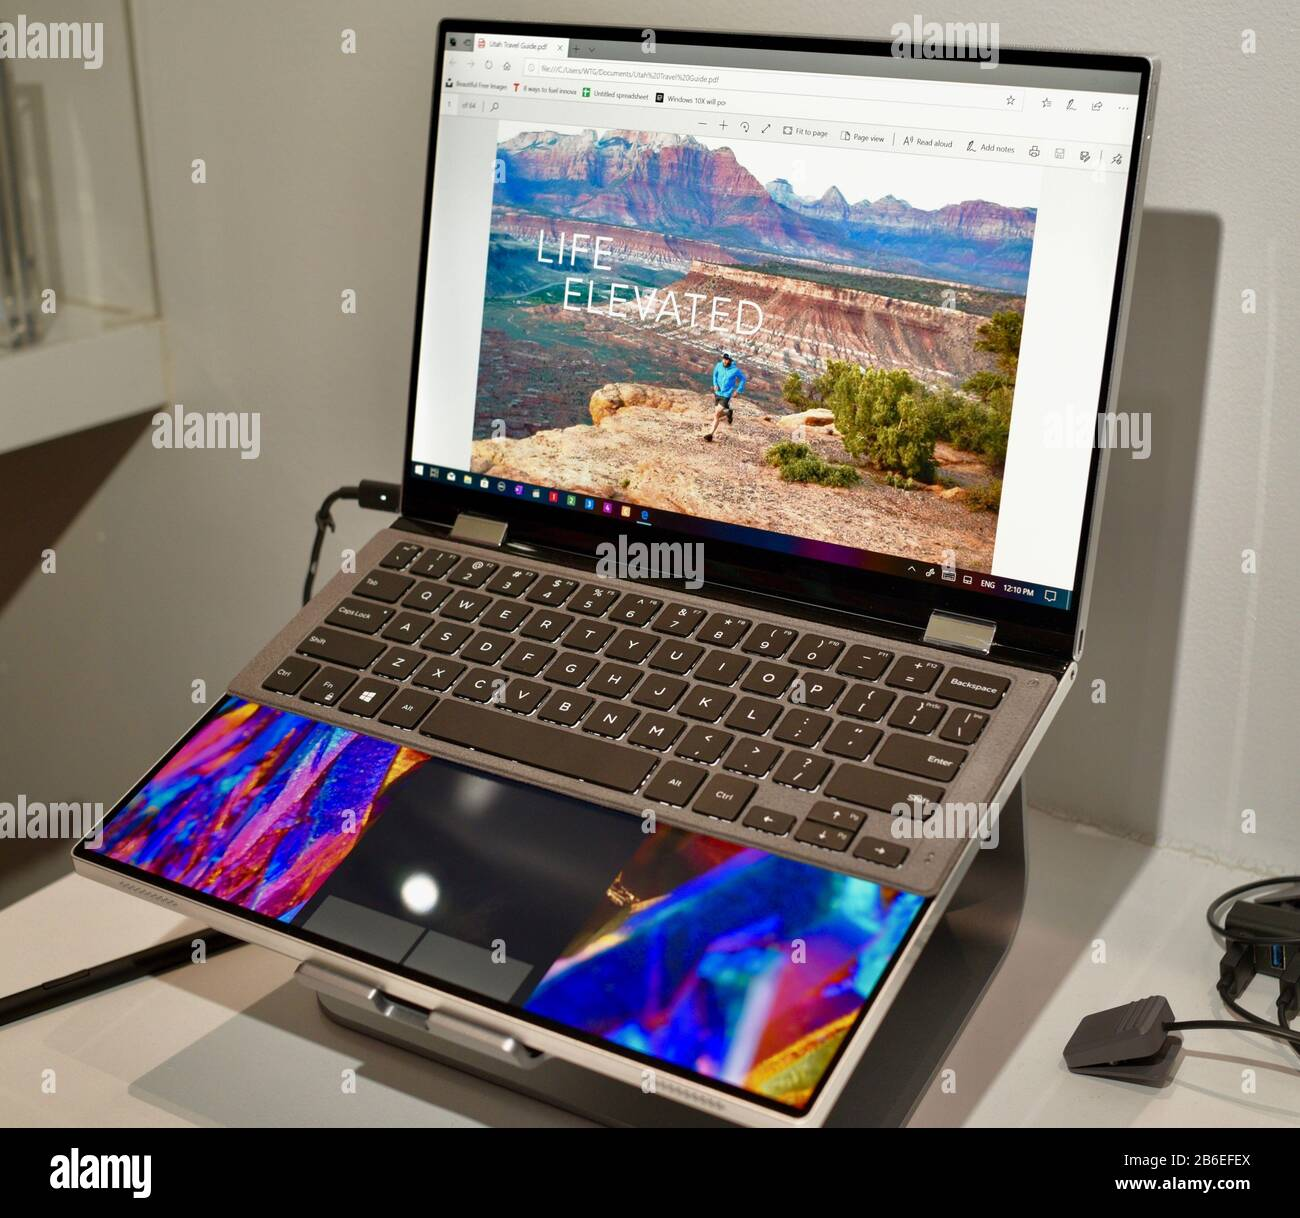 Dell Laptop High Resolution Stock Photography And Images Alamy